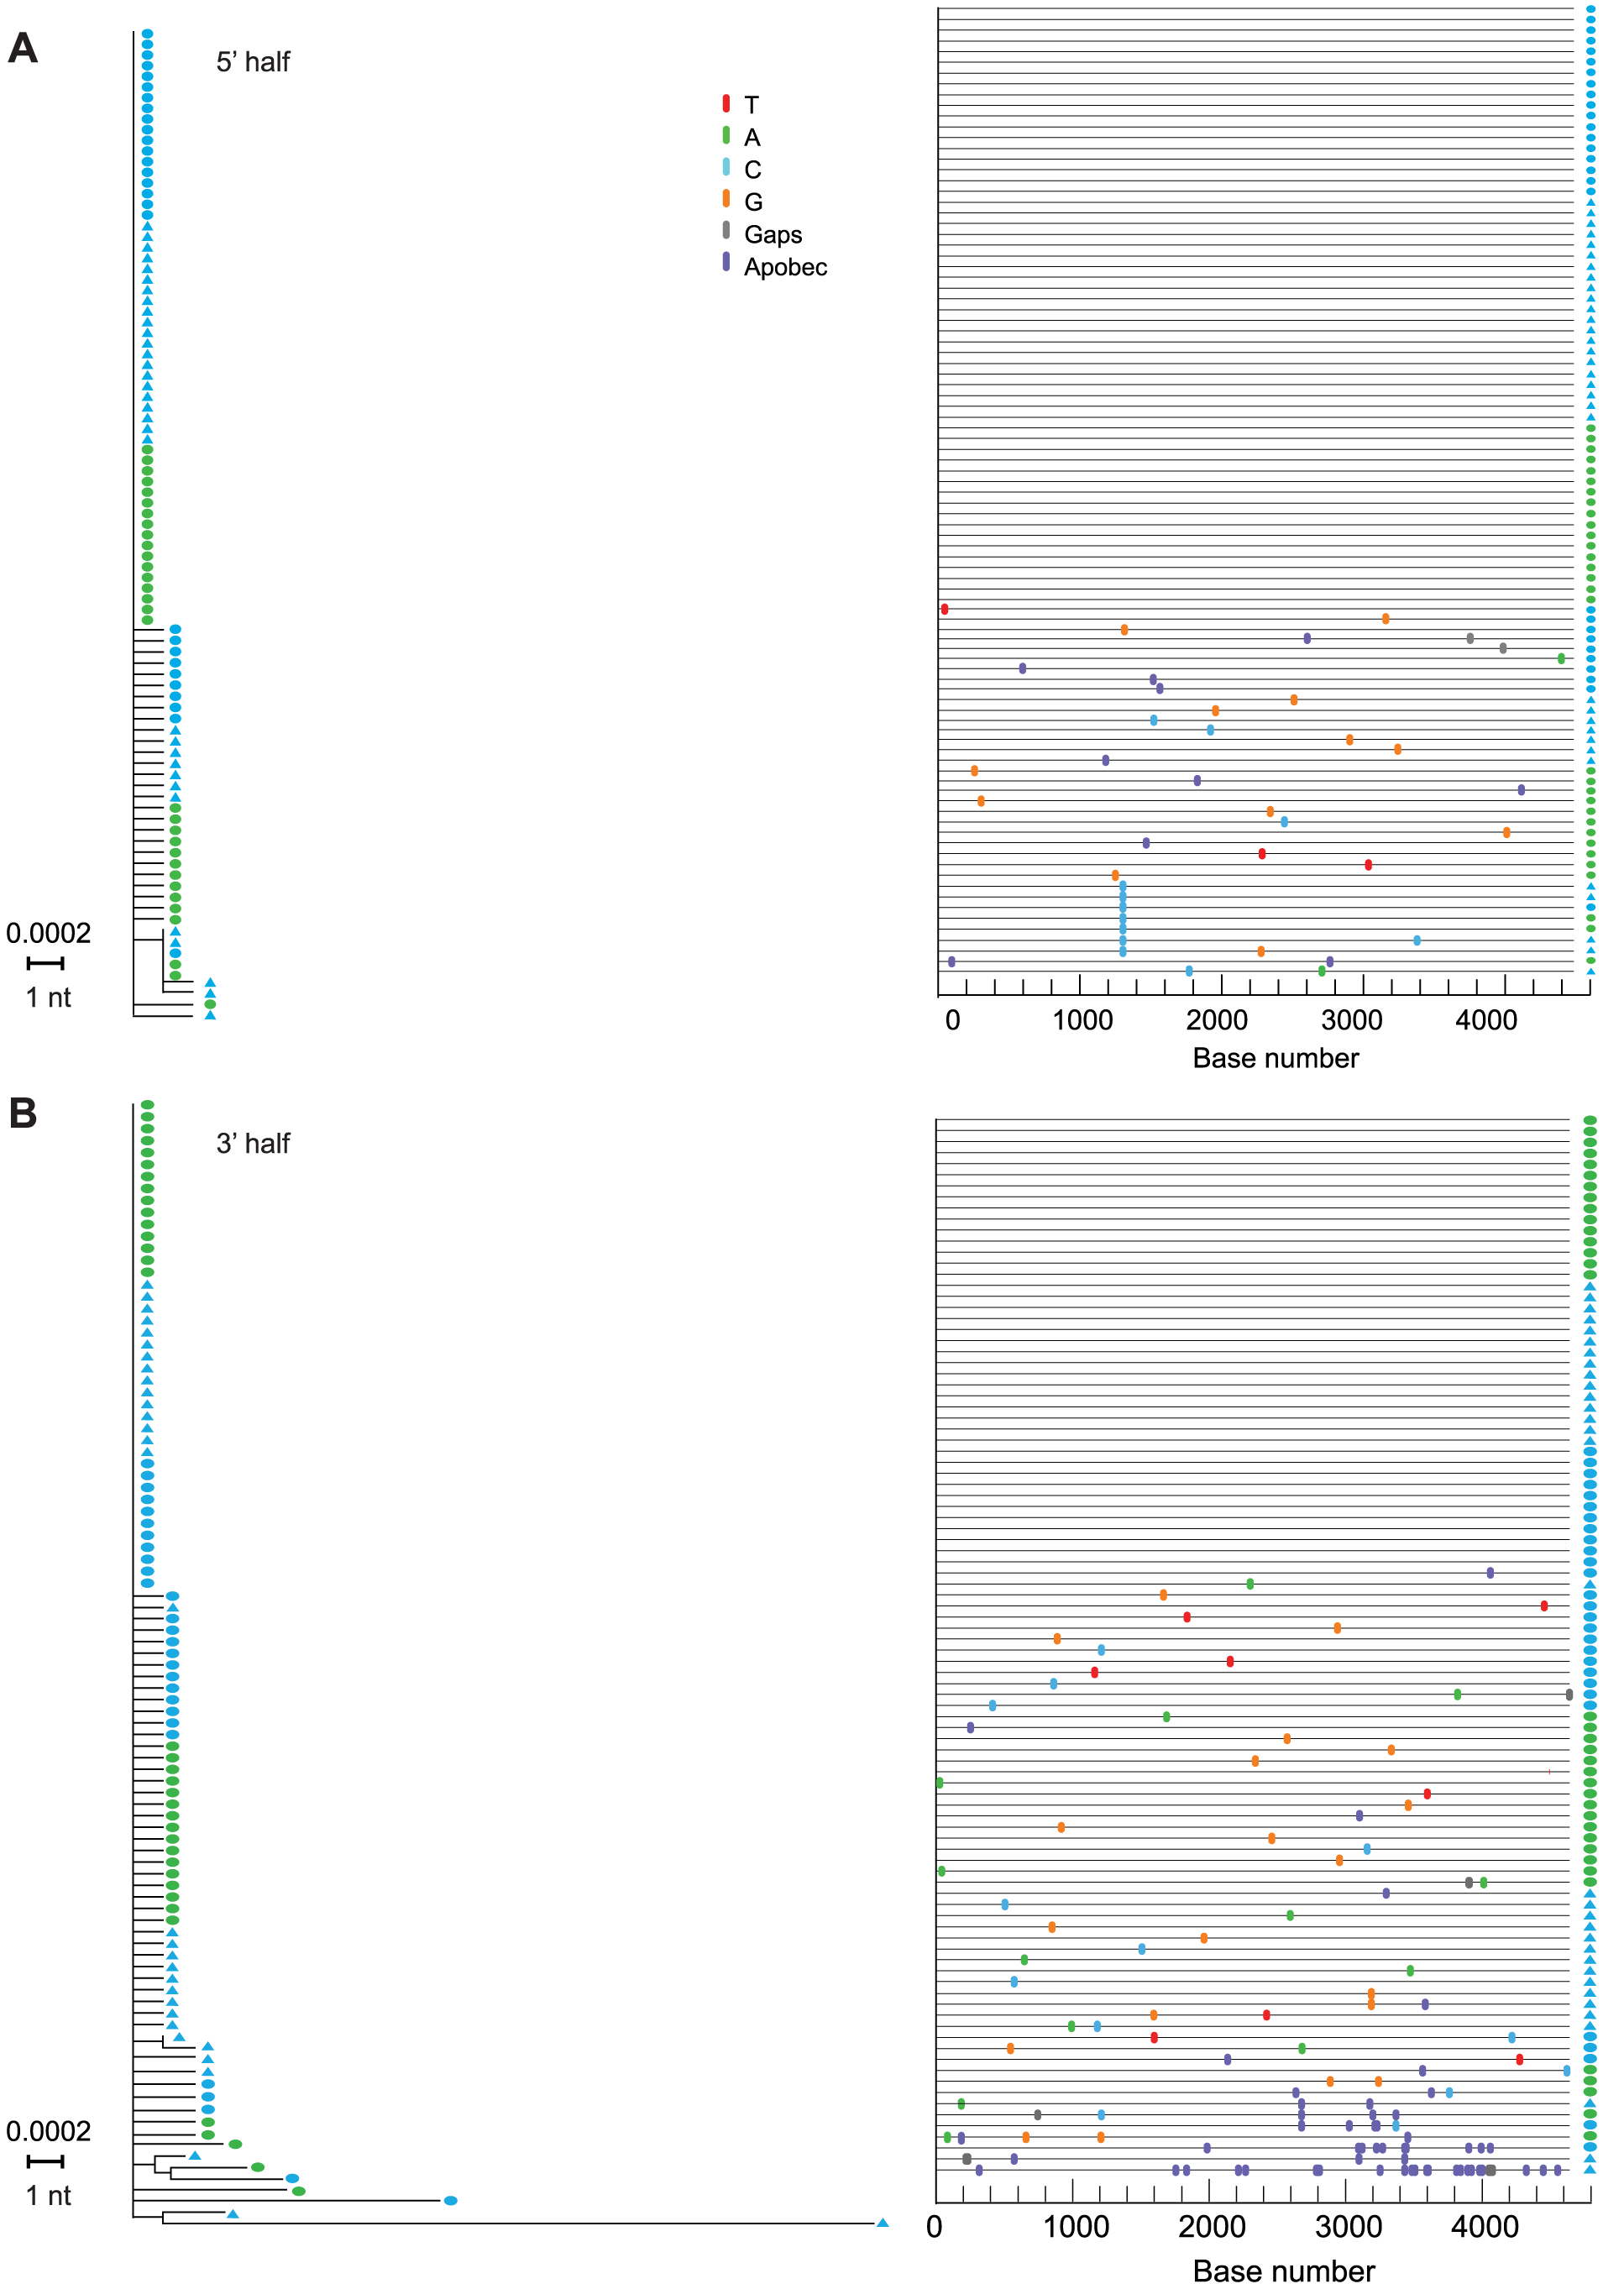 NJ trees and Highlighter plots of HIV-1 diversity in 5′ and 3′ half genomes in subject AD17.